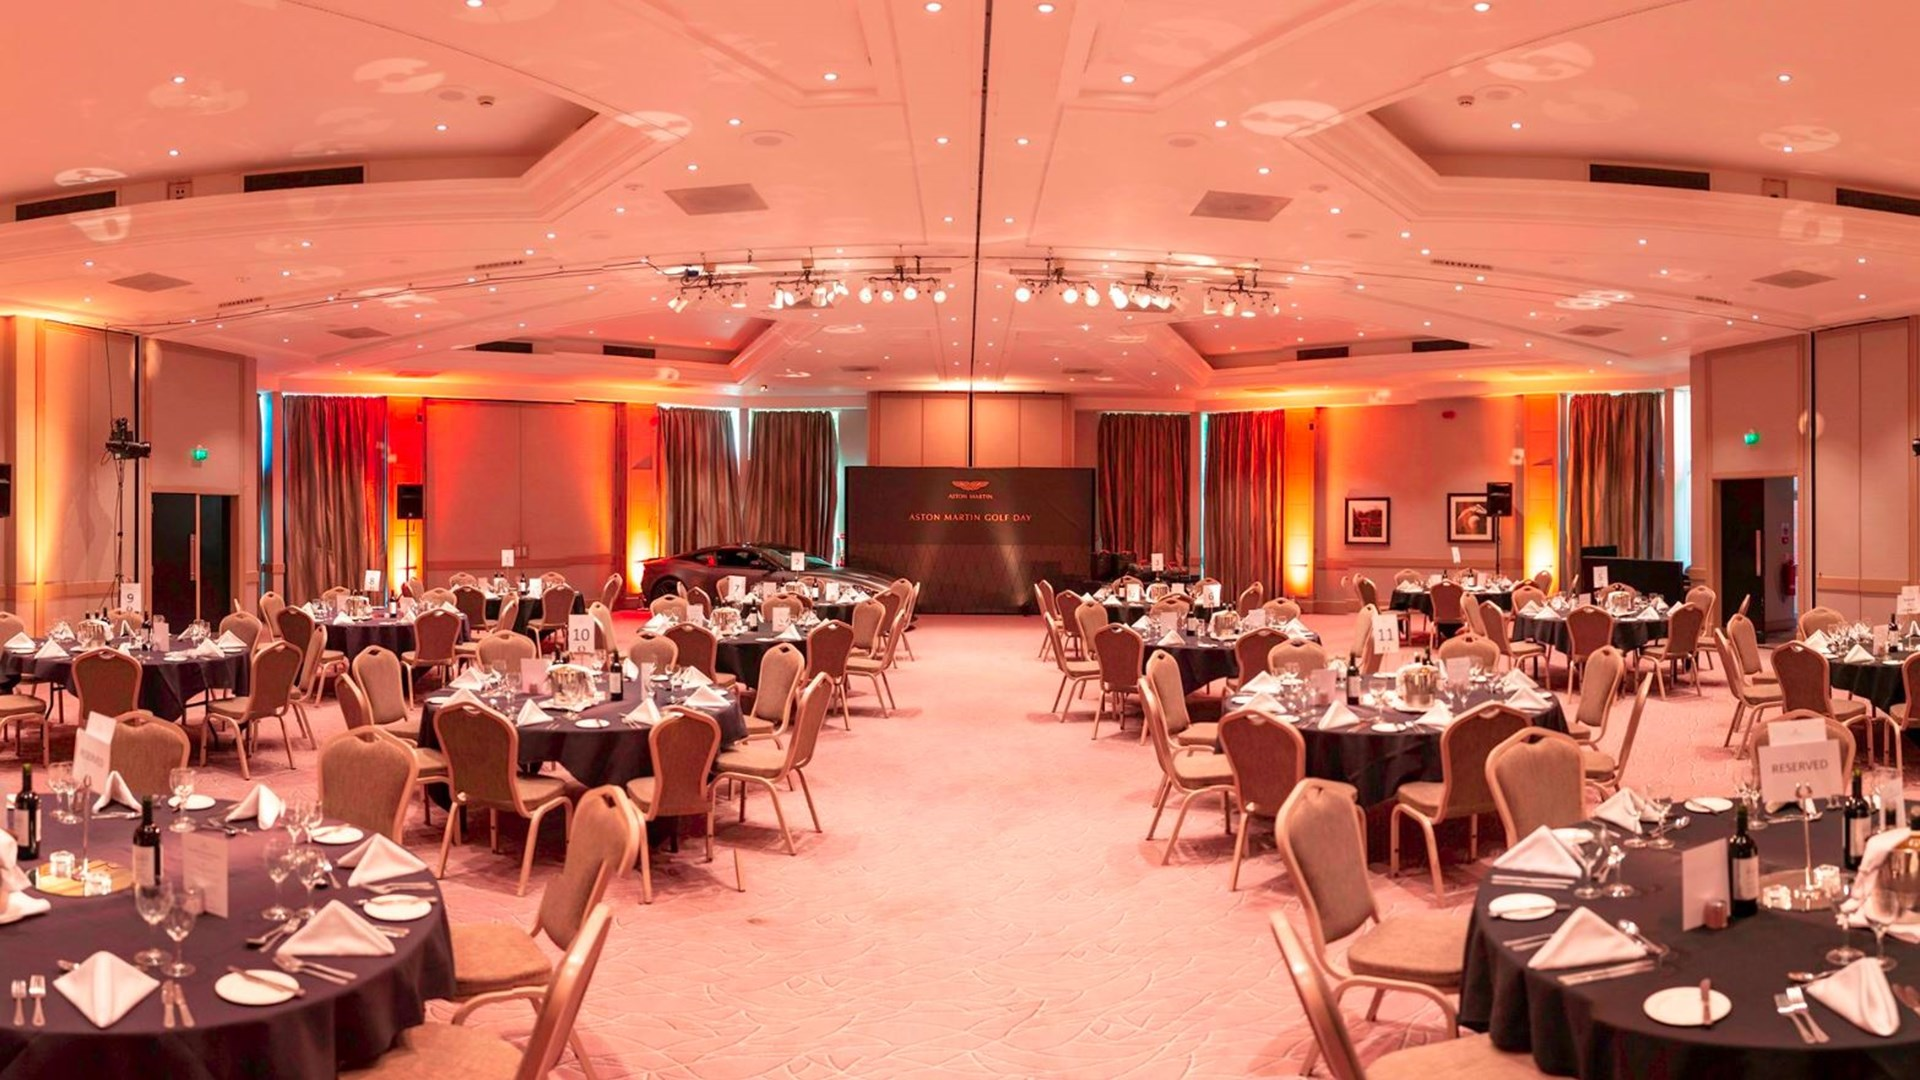 Banquets & Conferences at The Belfry